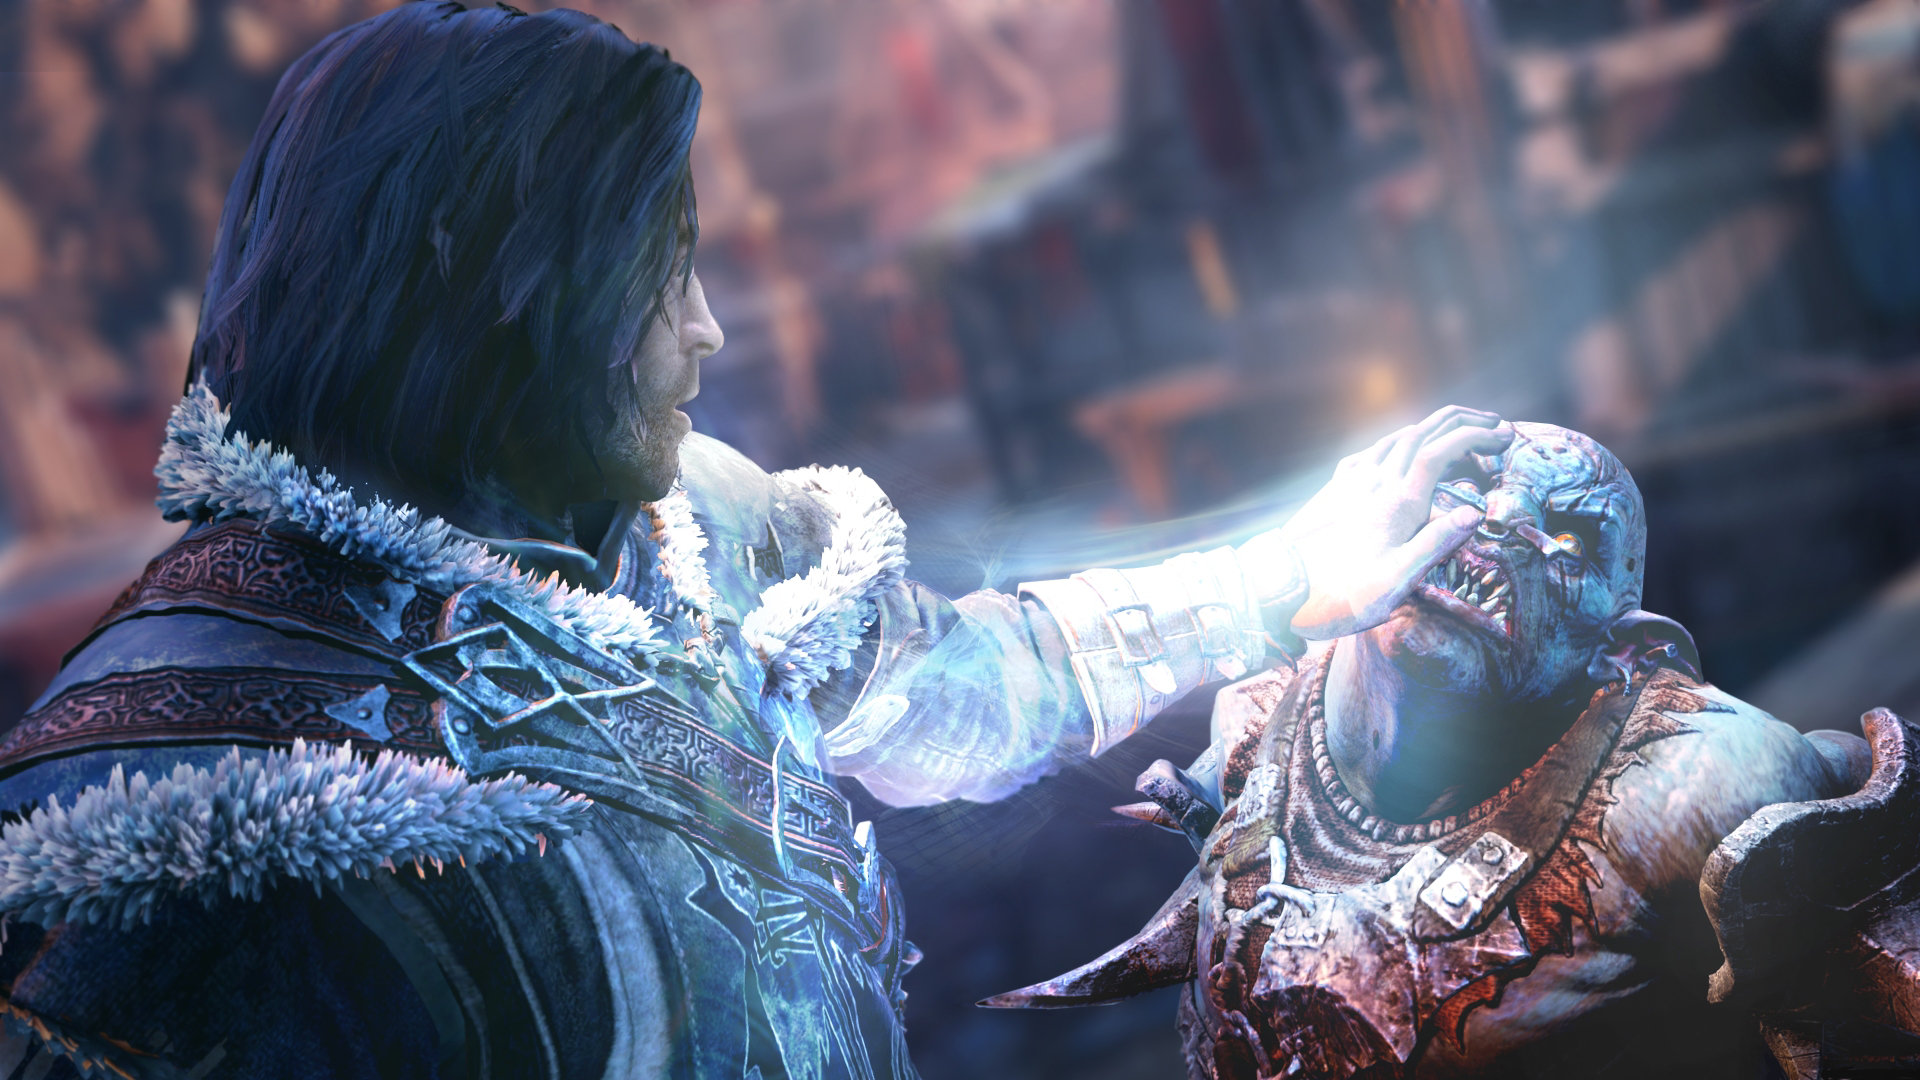 middle-earth-shadow-of-mordor-screen-02-